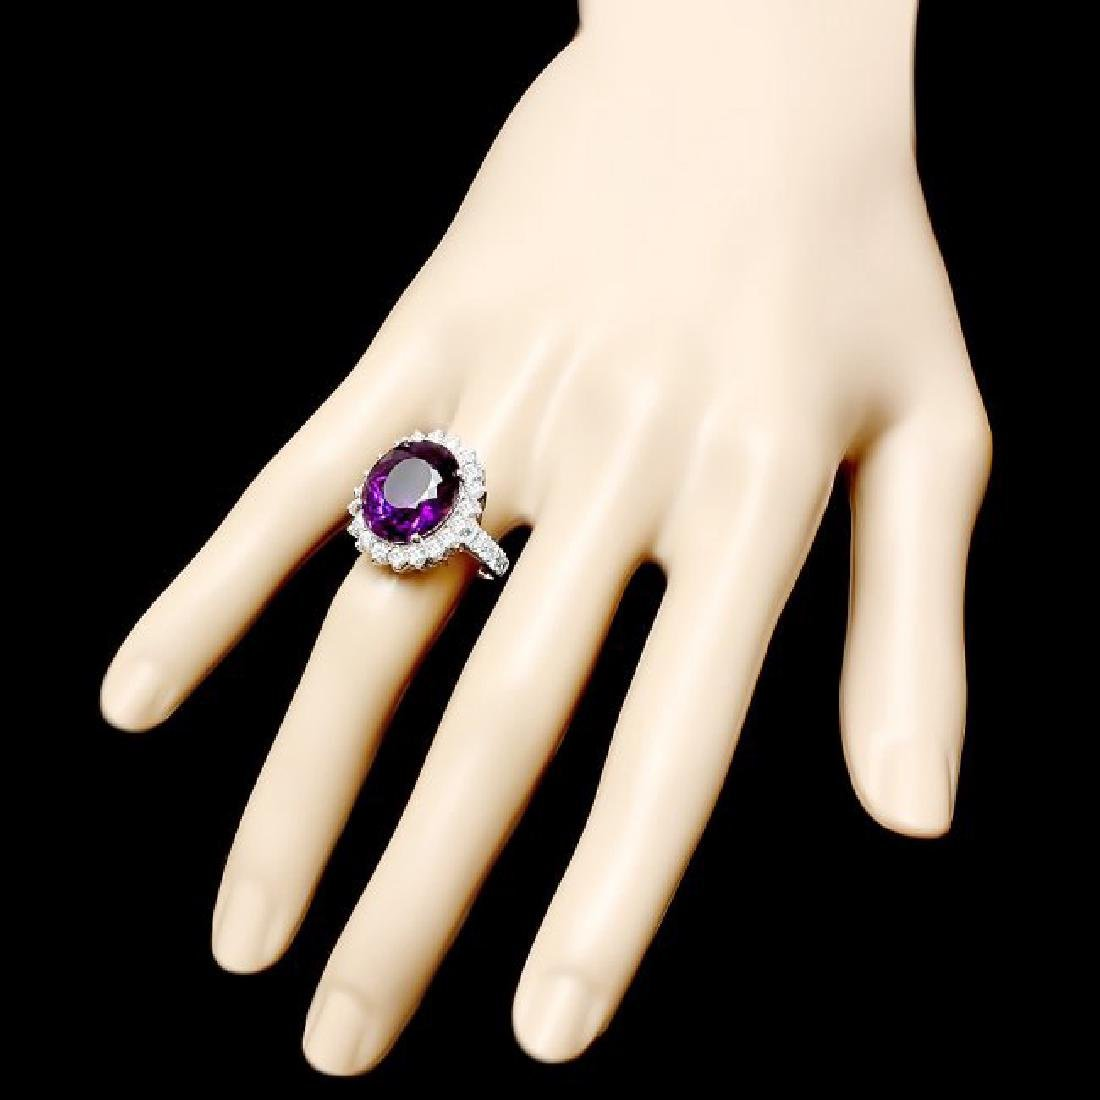 14k Gold 9.50ct Amethyst 1.60ct Diamond Ring - 3